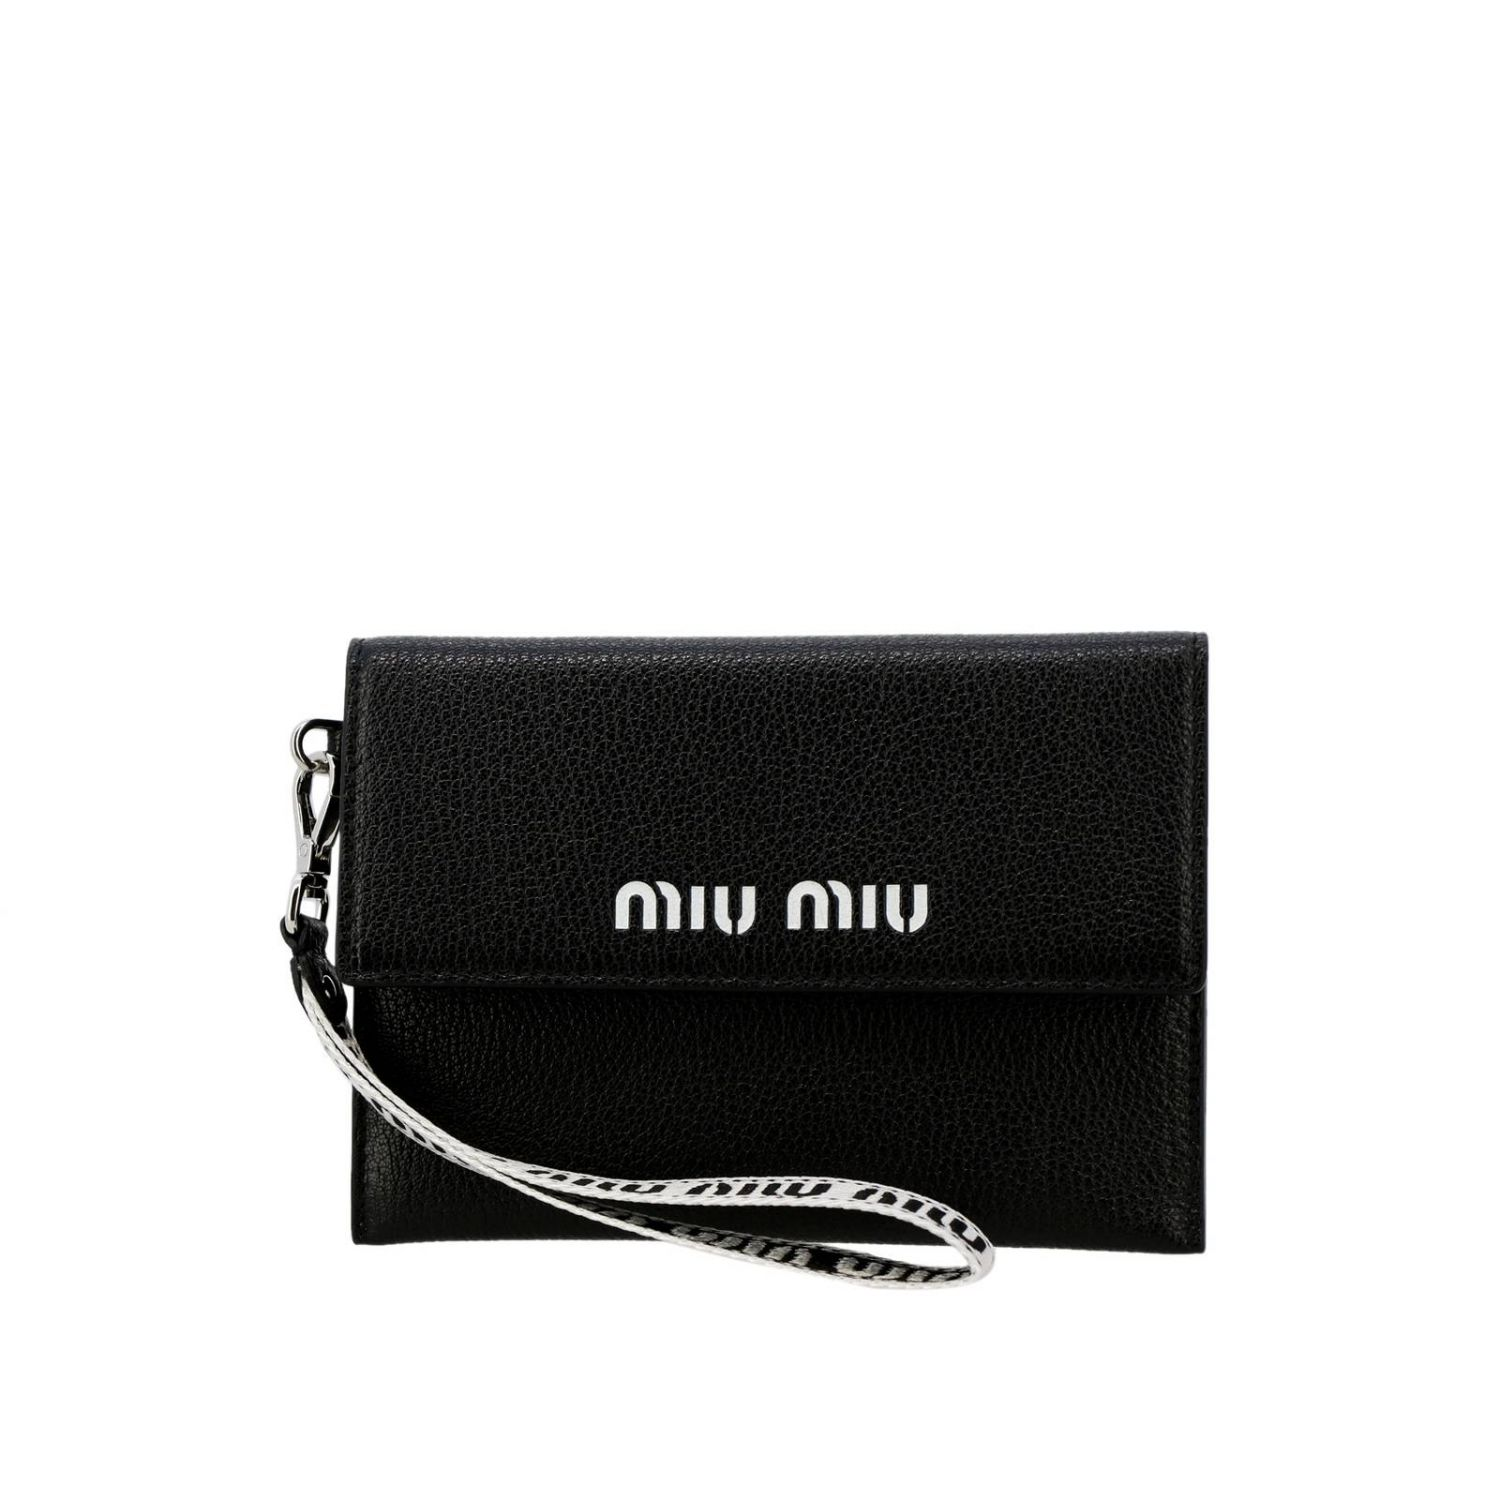 Wallet women Miu Miu black 1